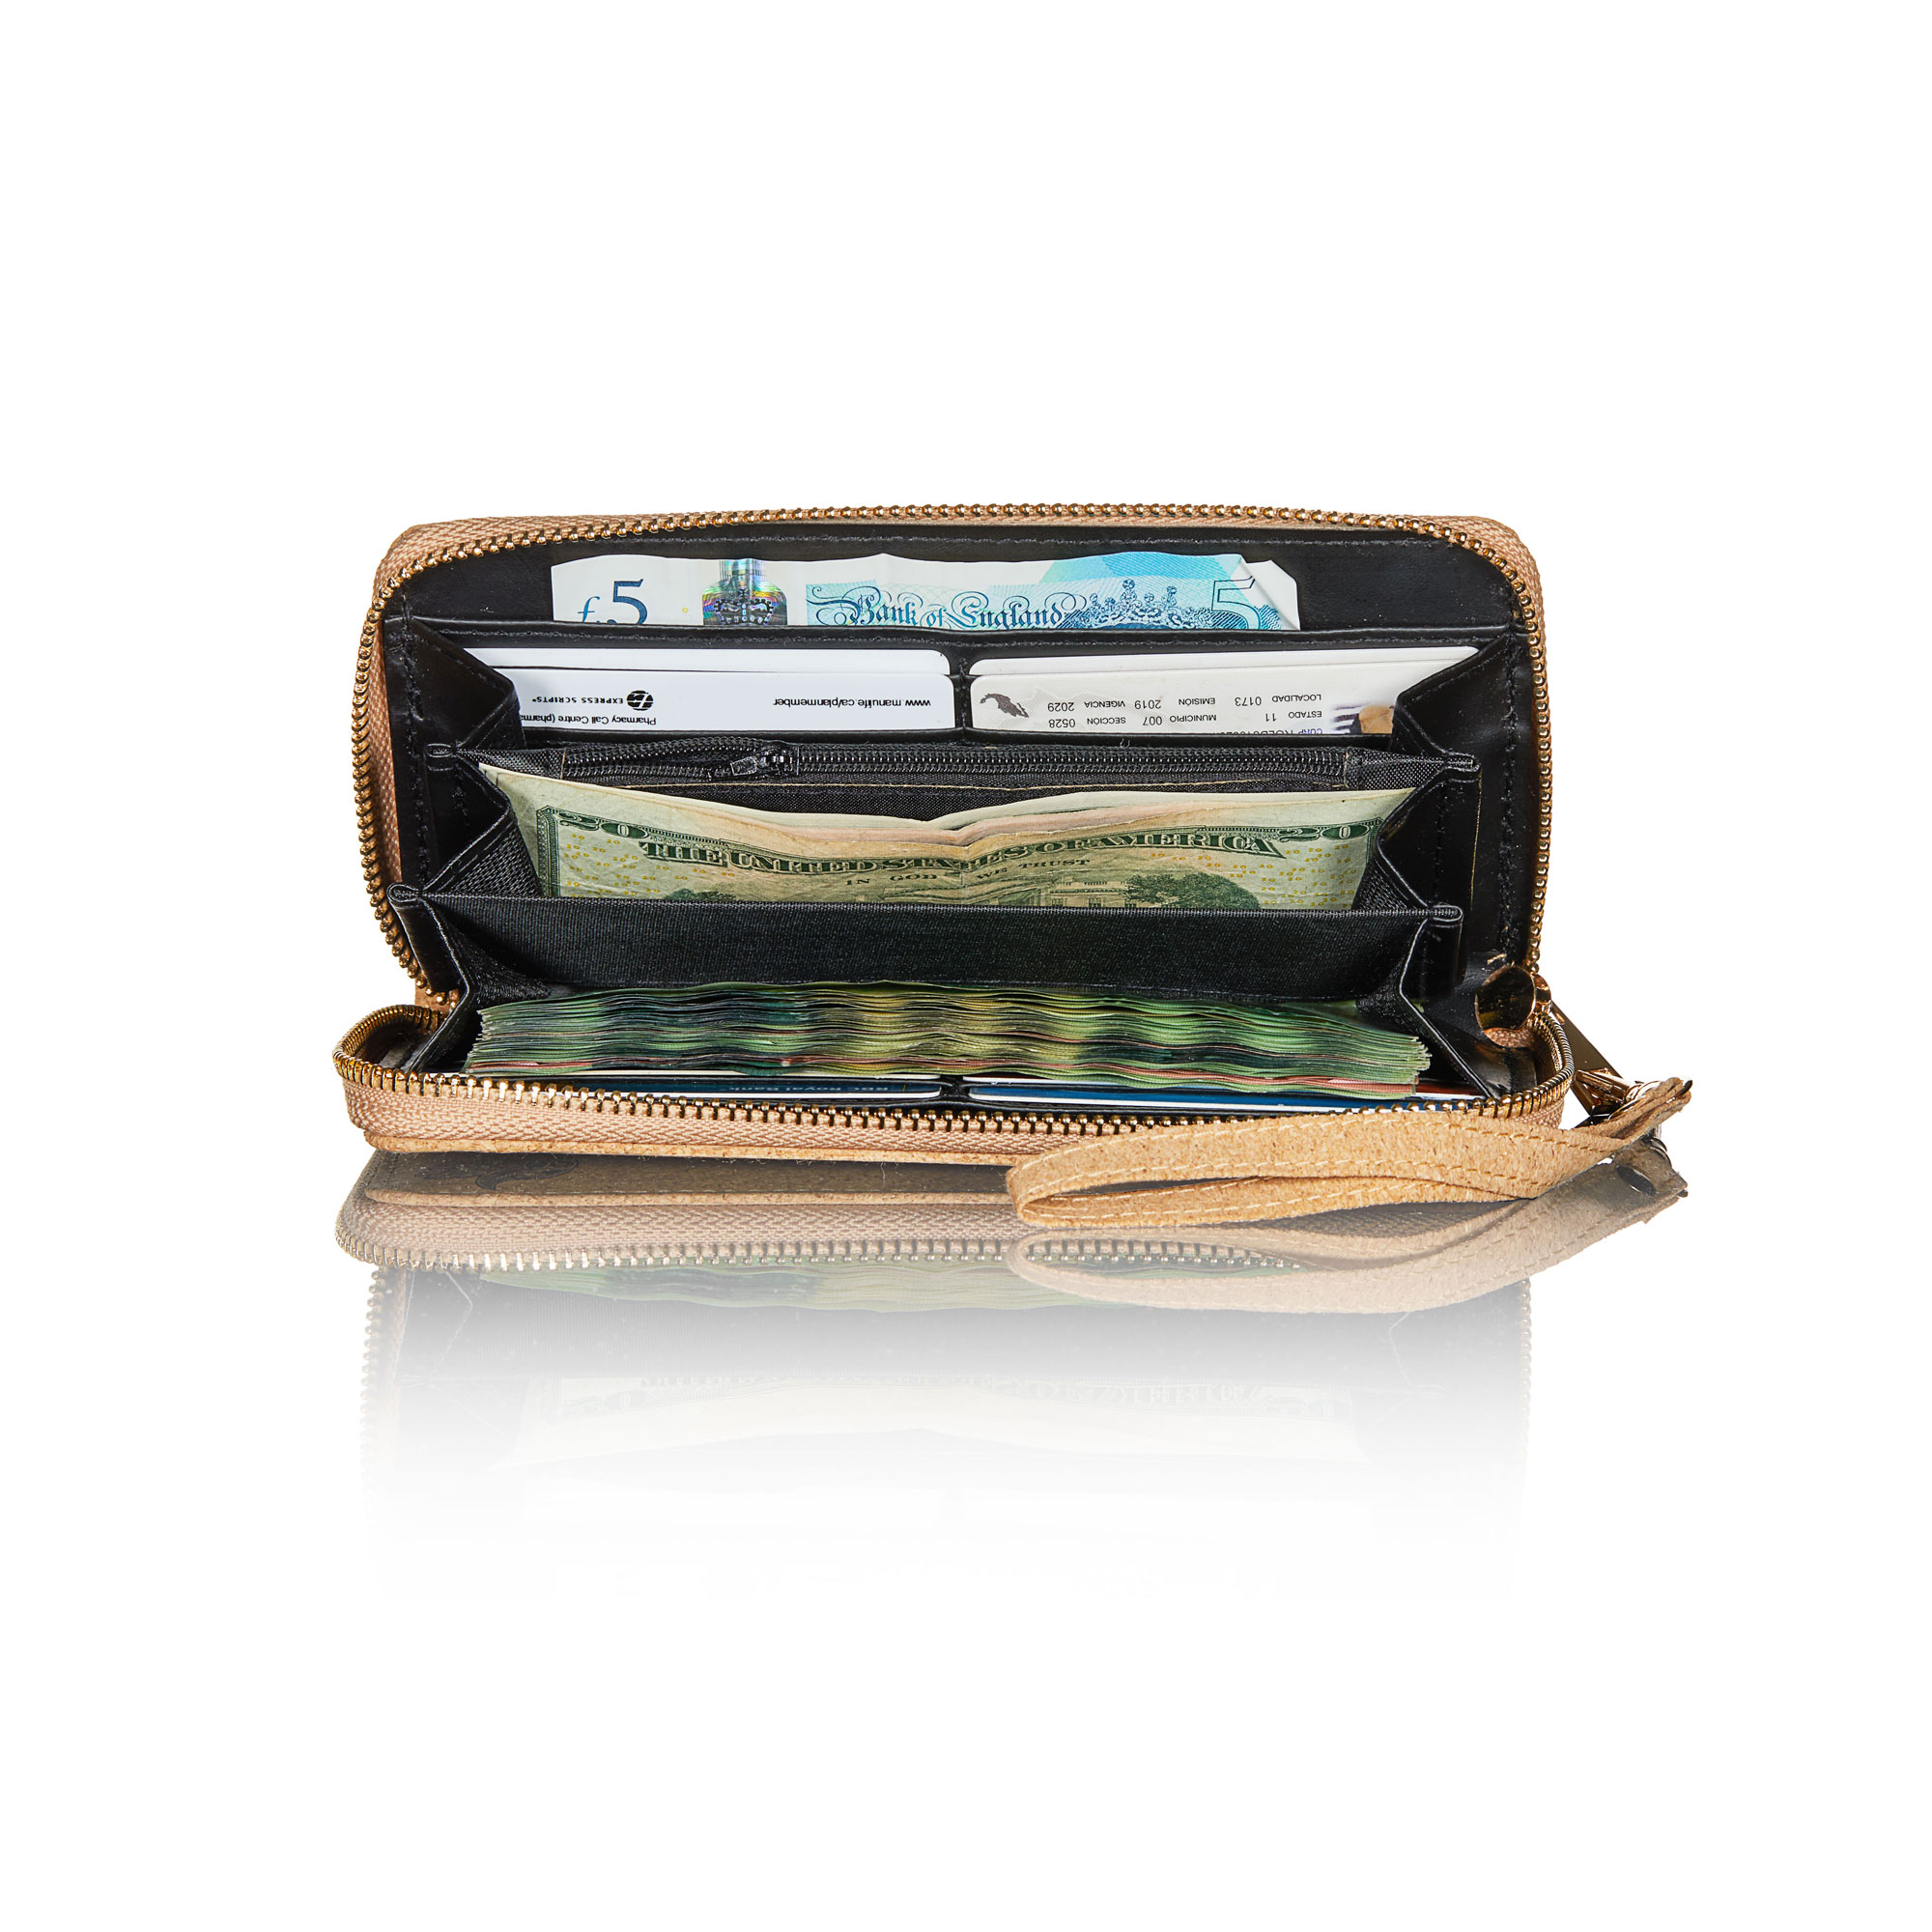 Frida ECO wallet inside.